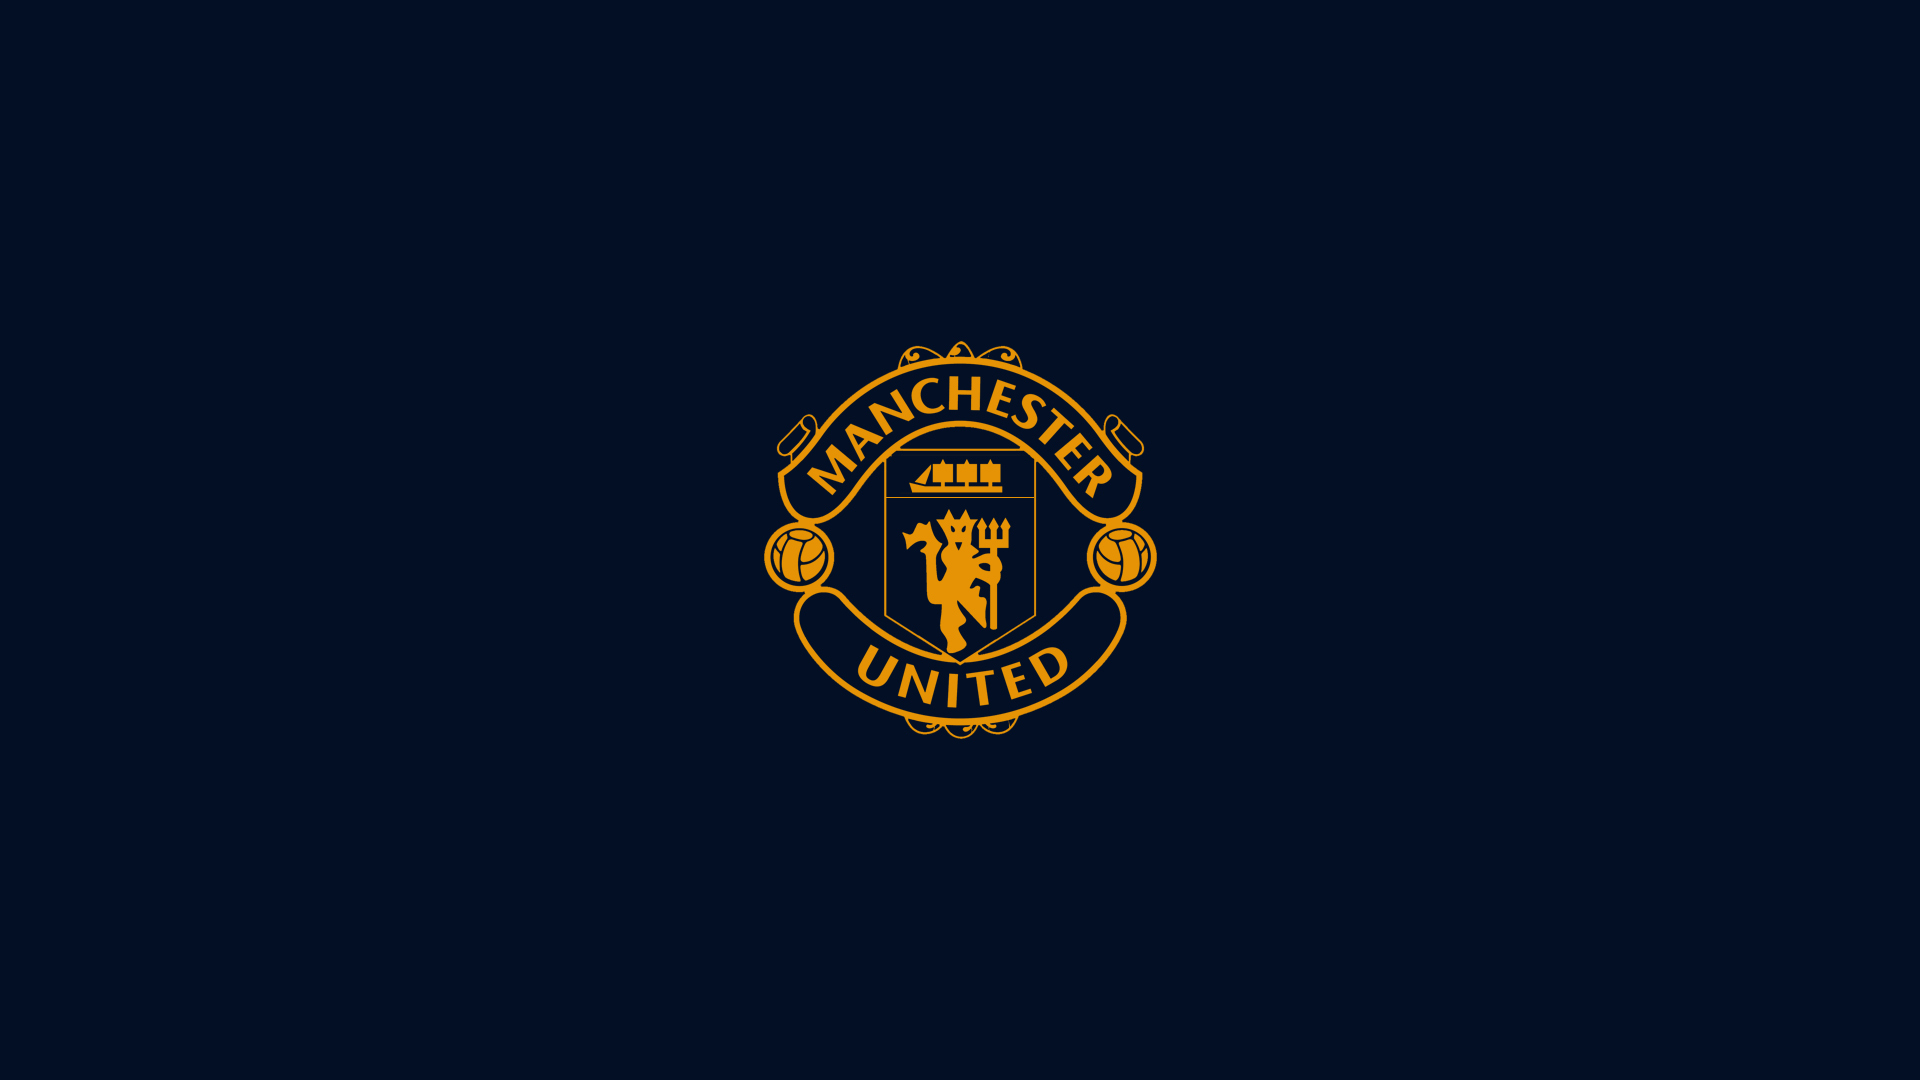 Manchester United Wallpapers Images Photos Pictures 1920x1080